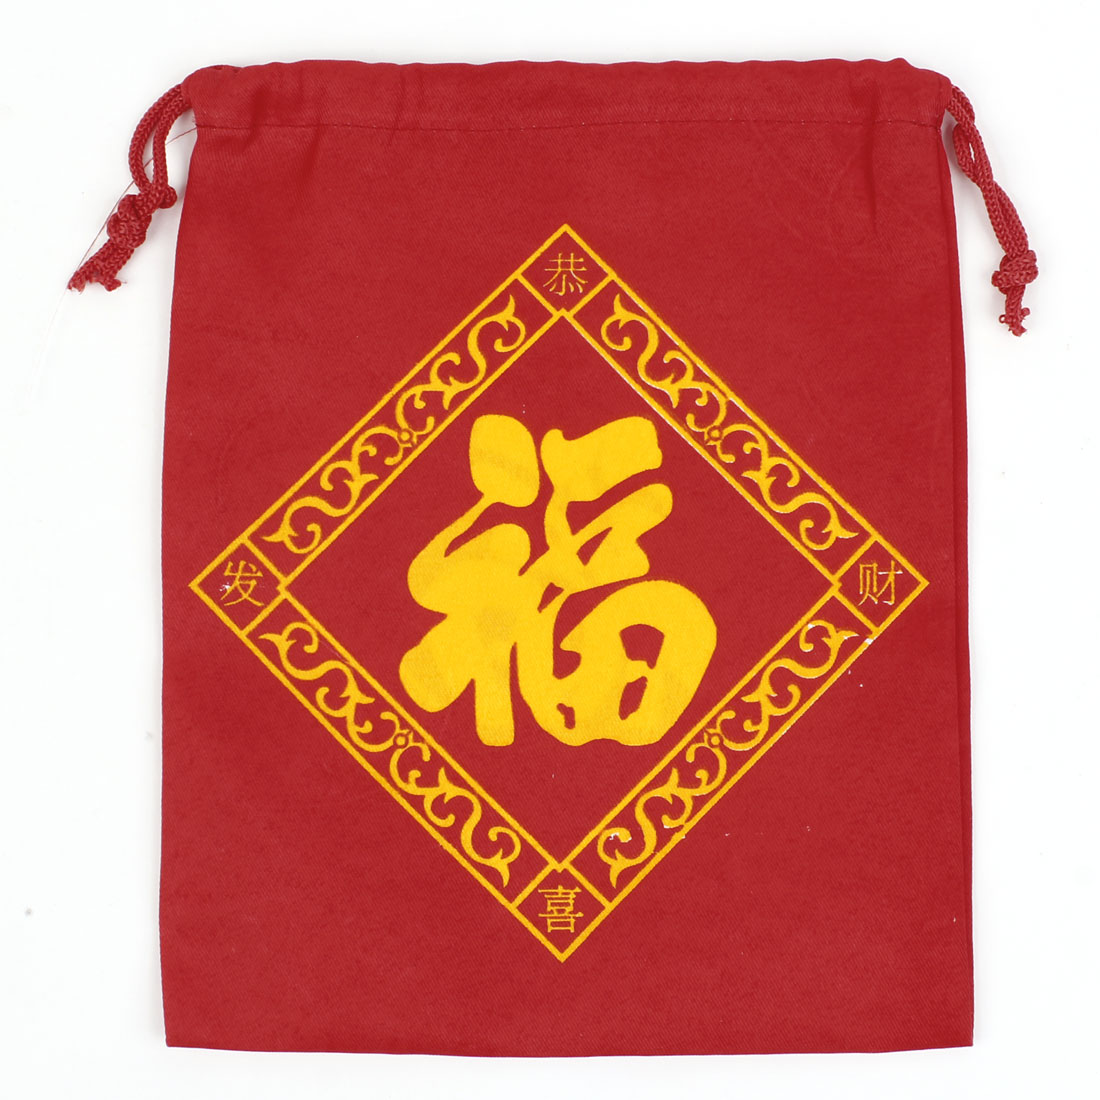 "Yellow Red Chinese Fu Pattern Drawstring Tablet PC Pouch Case Bag 10.8""x8.6"""